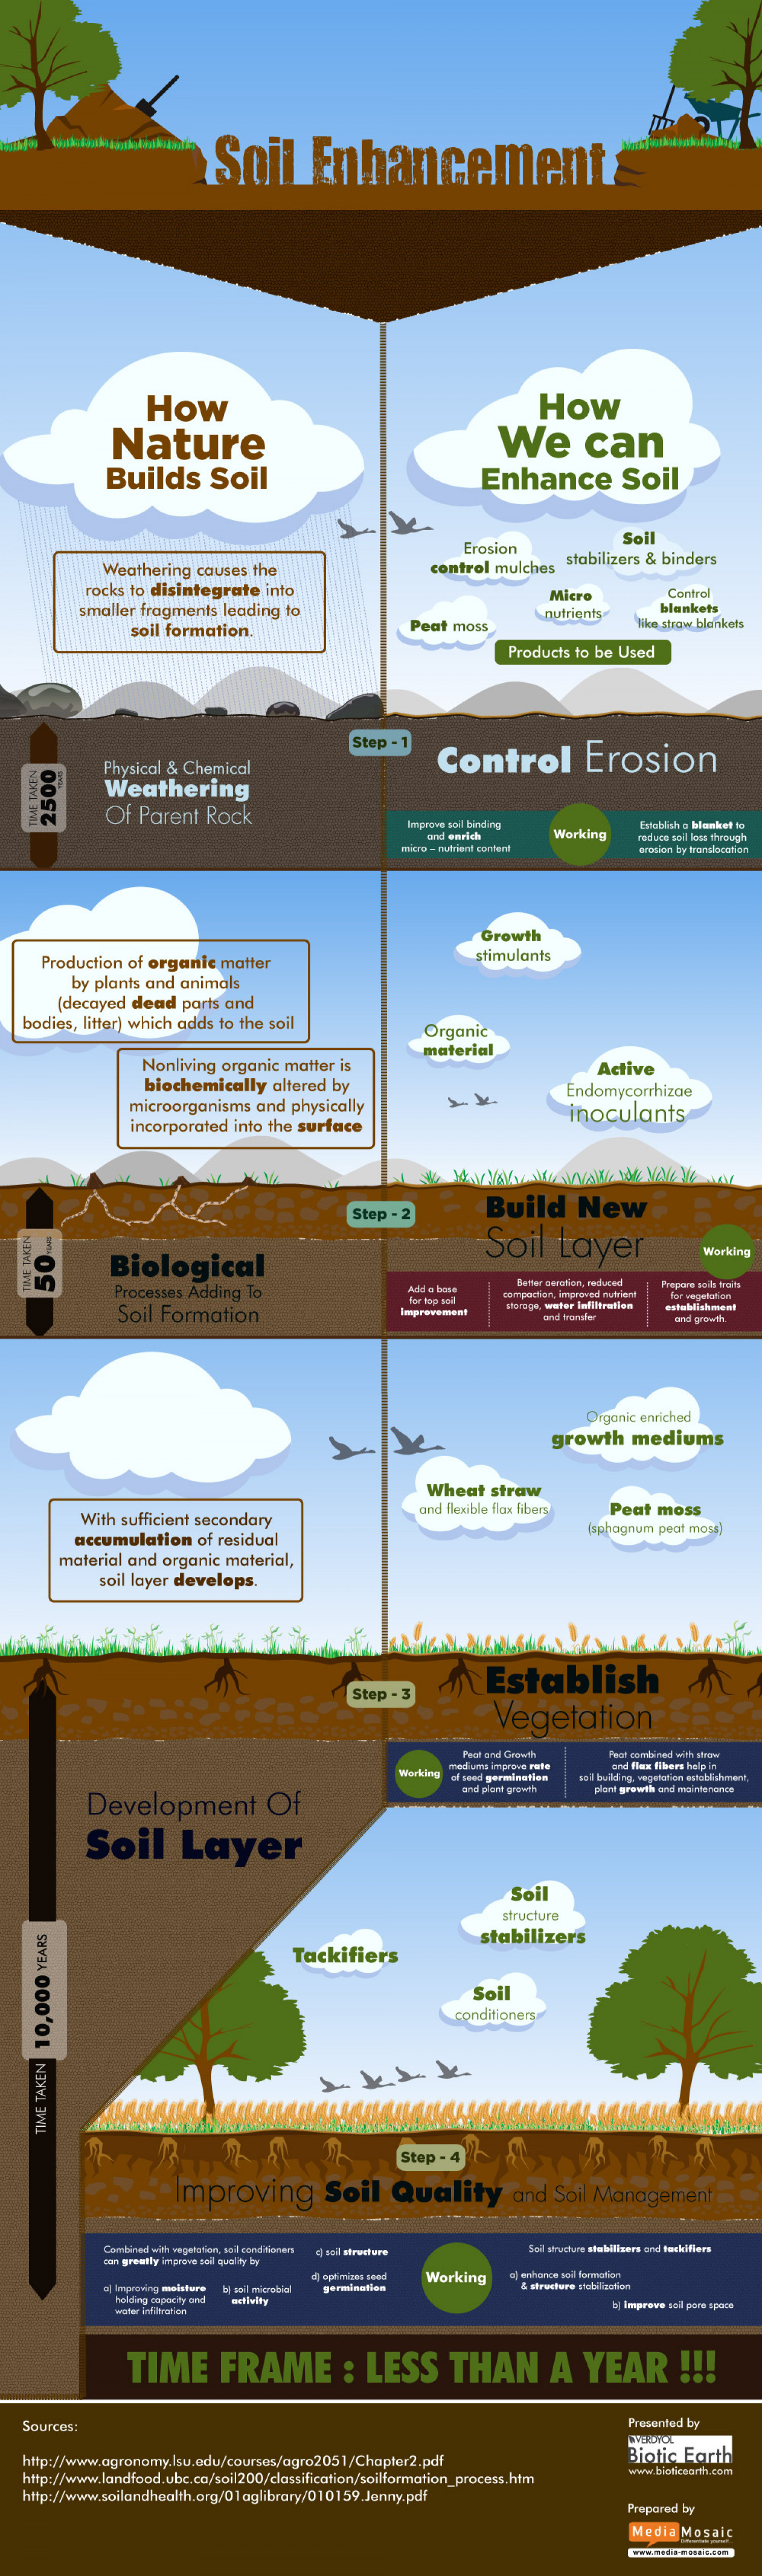 Soil Enhancement Infographic